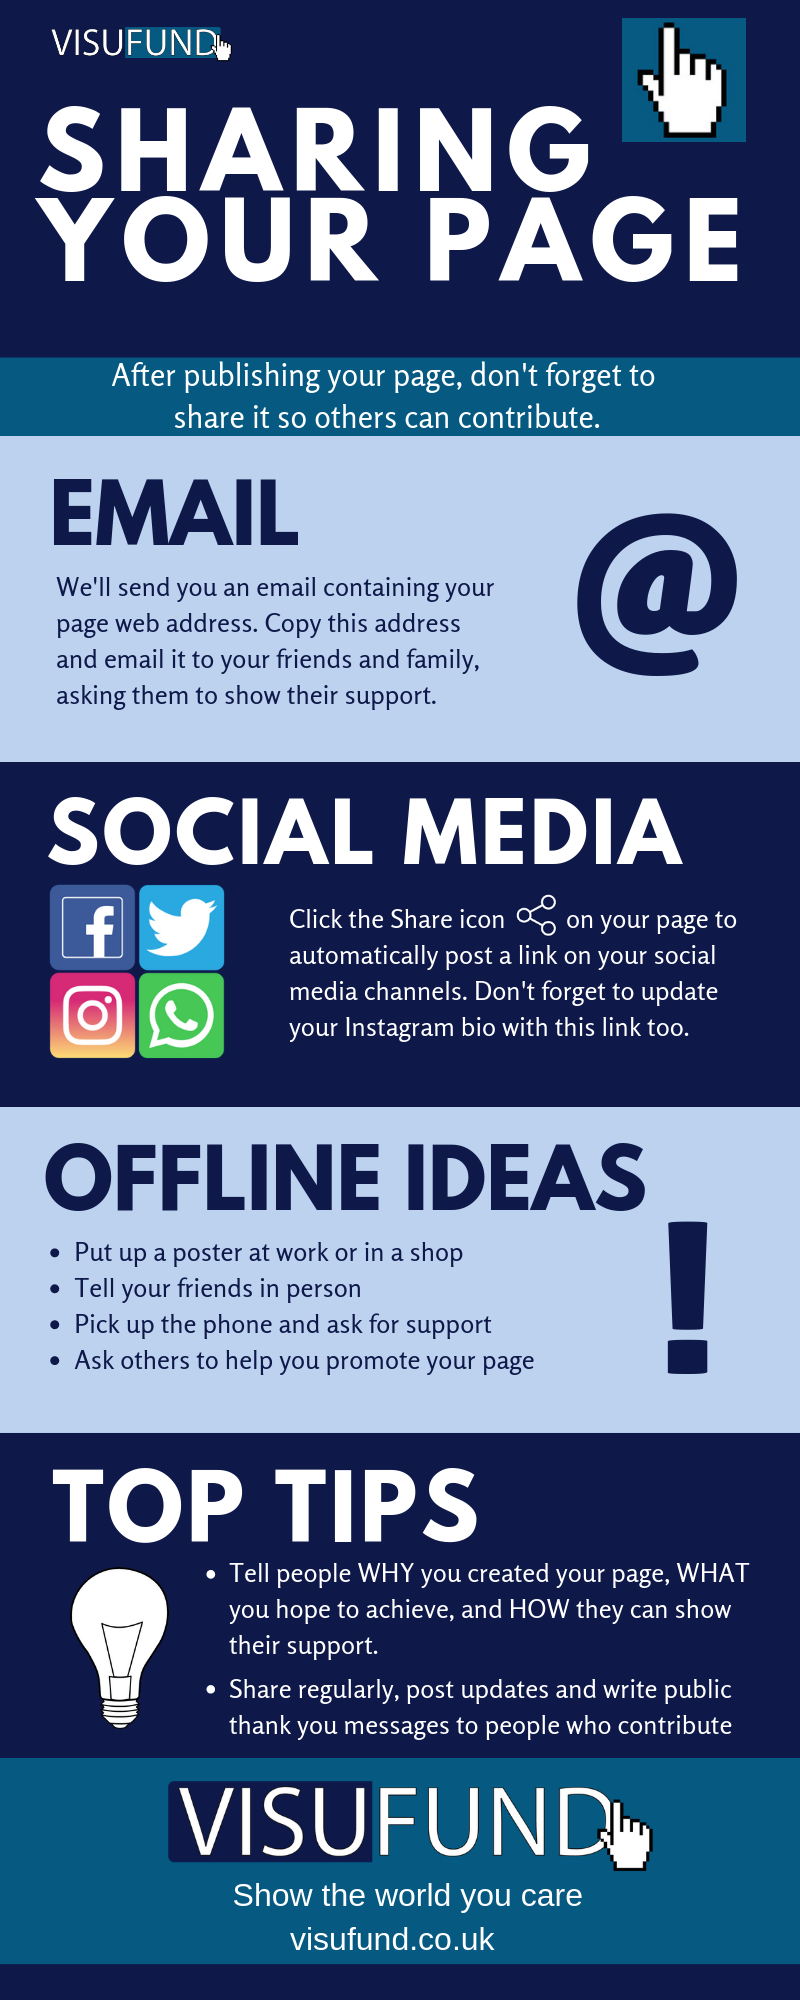 infographic on sharing your page - text below